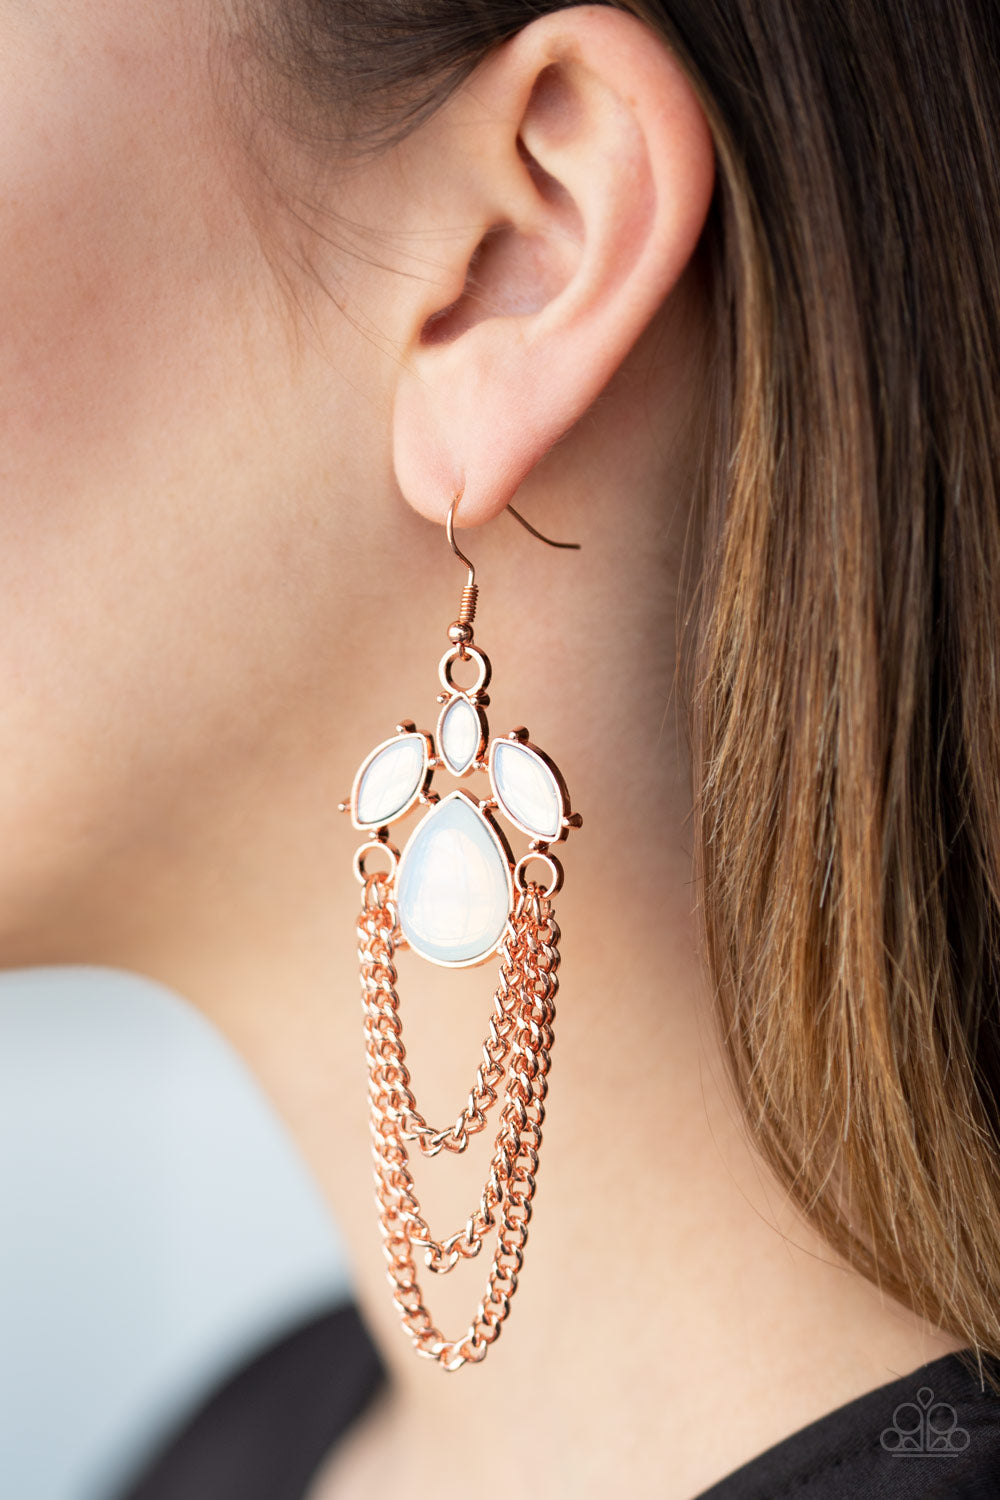 Paparazzi Jewelry & Accessories - Opalescence Essence - Copper Earrings. Bling By Titia Boutique